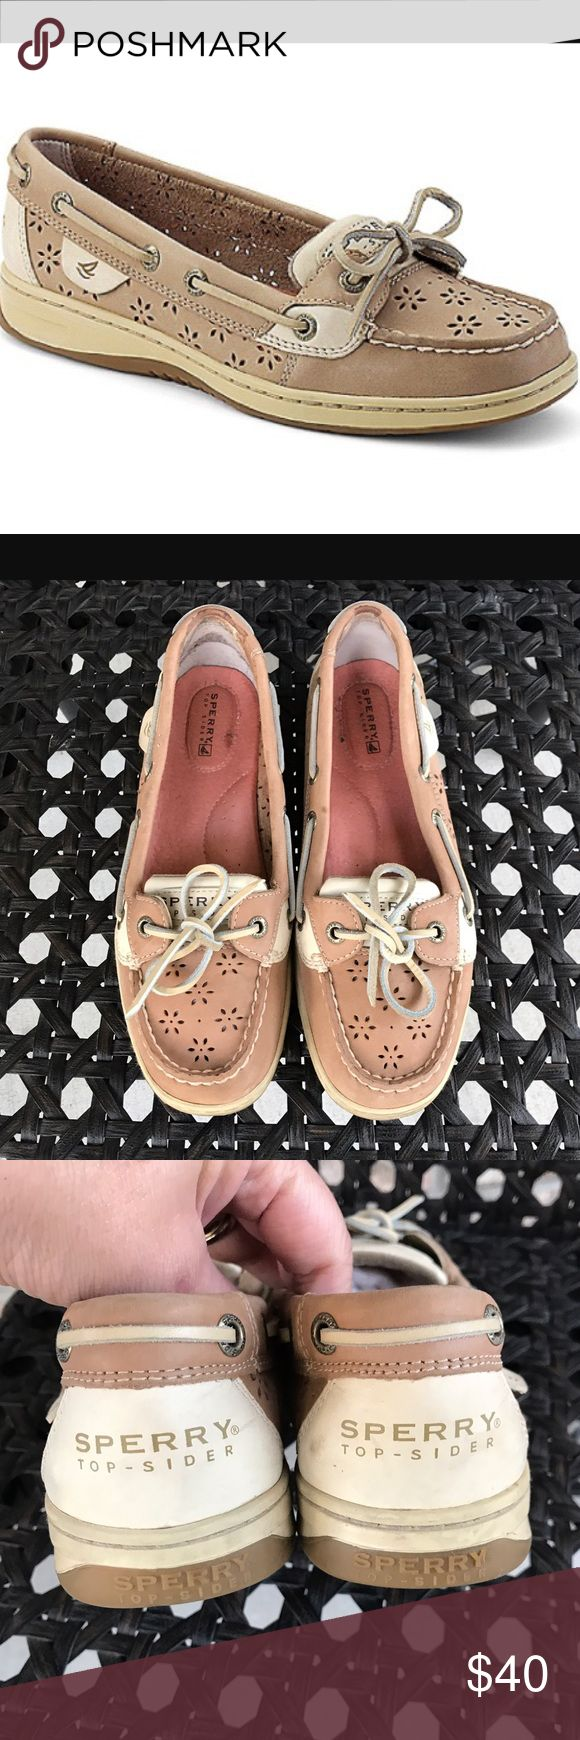 Sperry Top Sider Angelfish Flower Size 7.5 Sperry Top-Siders. Size 7.5, excellent condition! Neutral color pairs well with everything! No trades, thanks! Sperry Top-Sider Shoes